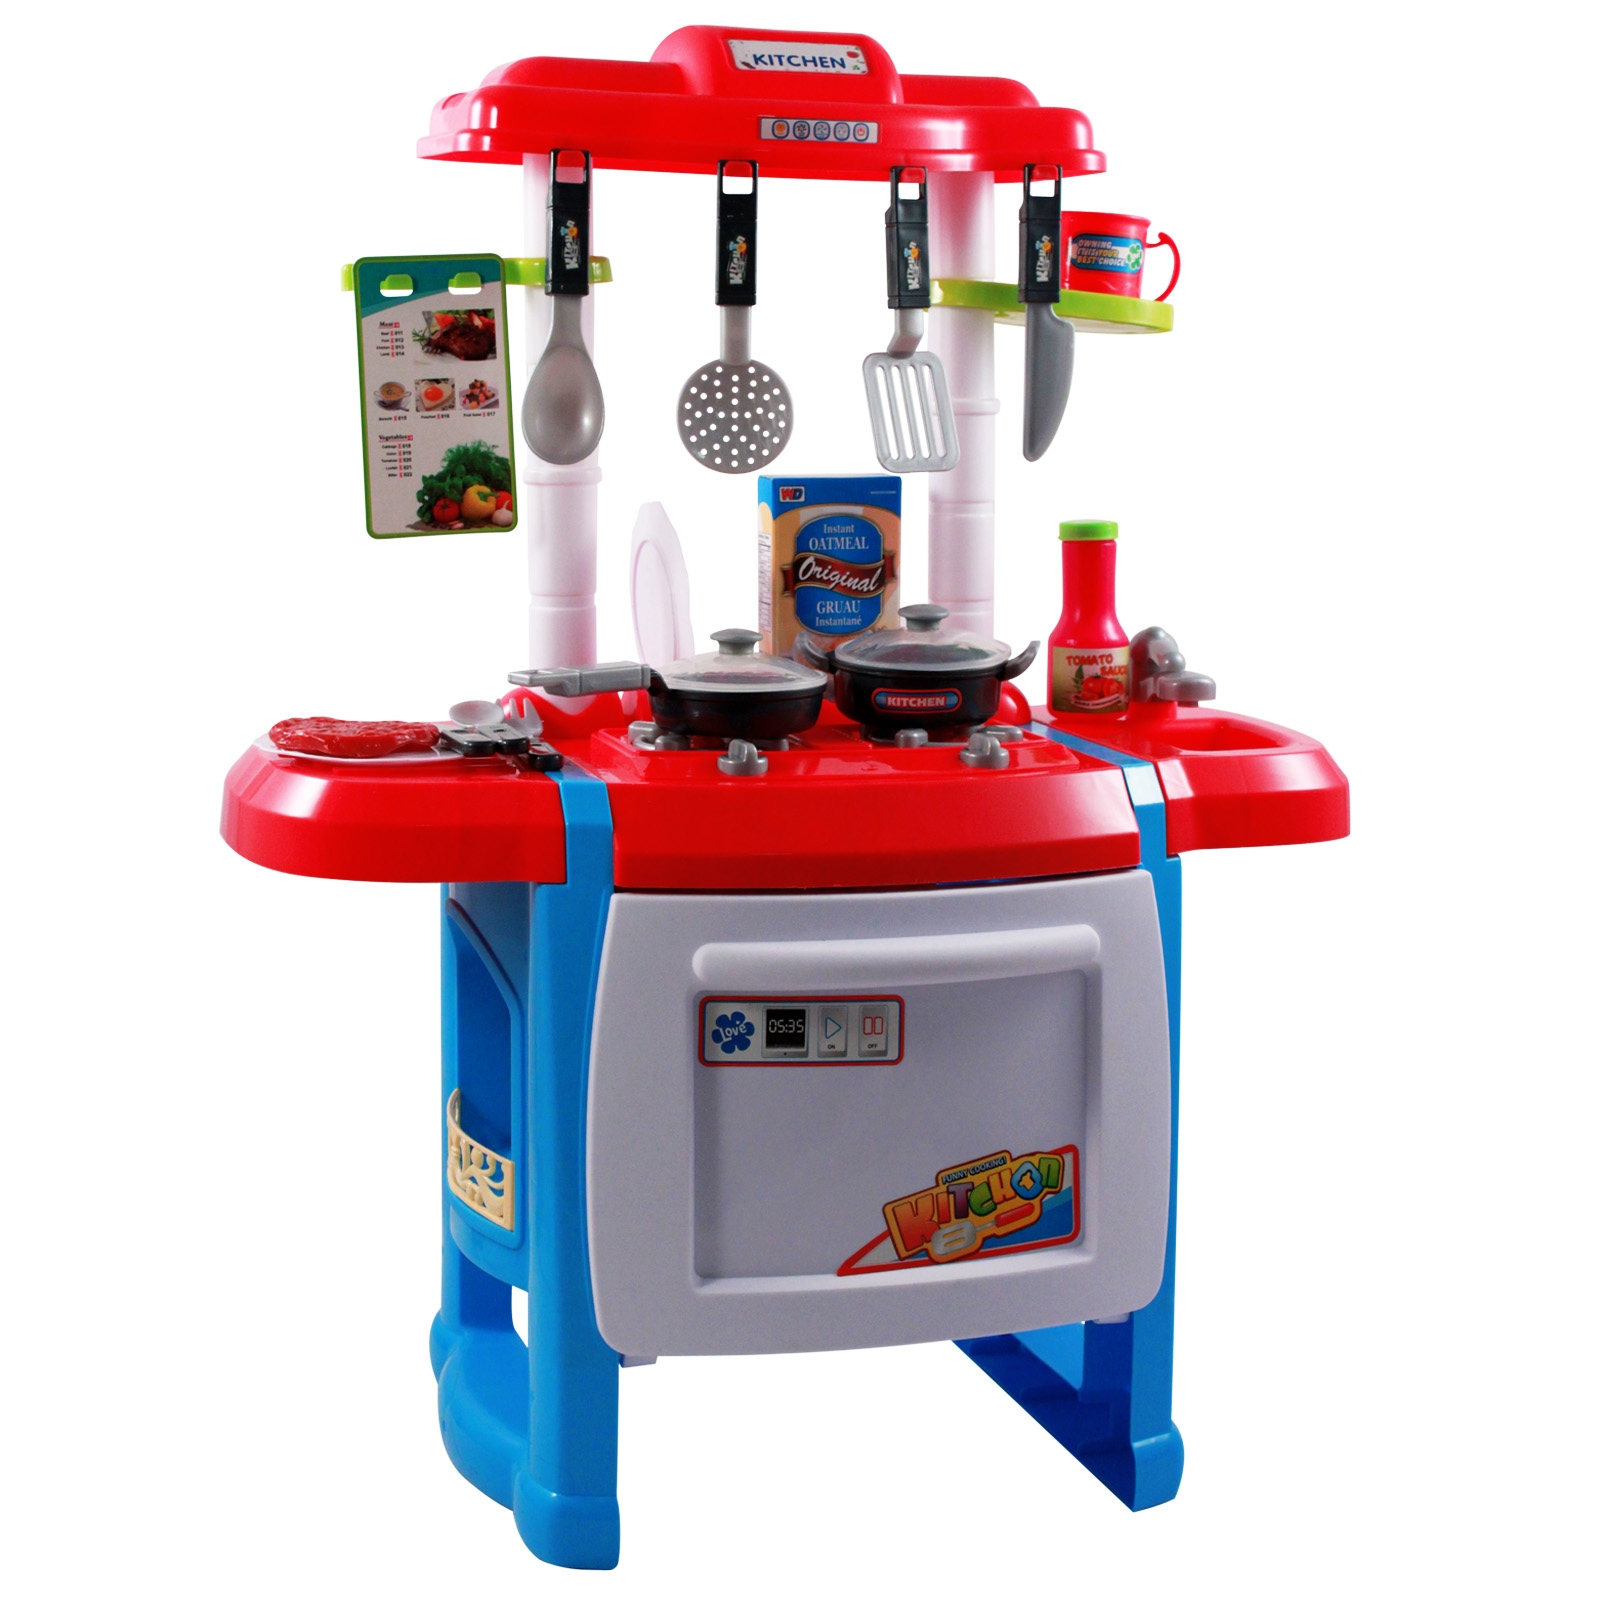 Jumbo Childrens Toy Kitchen Oven Play Set - Walmart.com